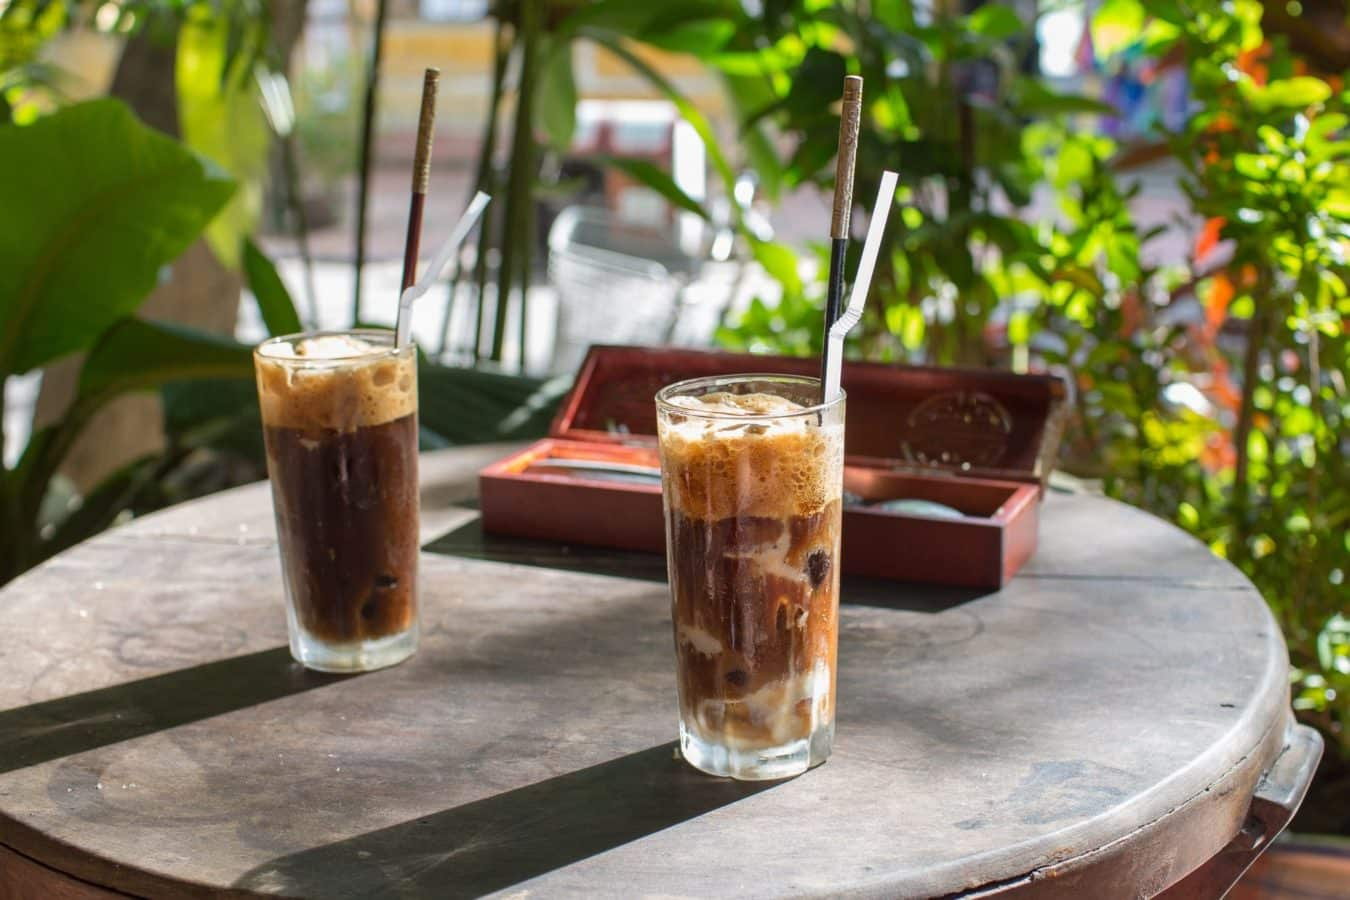 Hoi An Walking Tour and Coffee Making Class